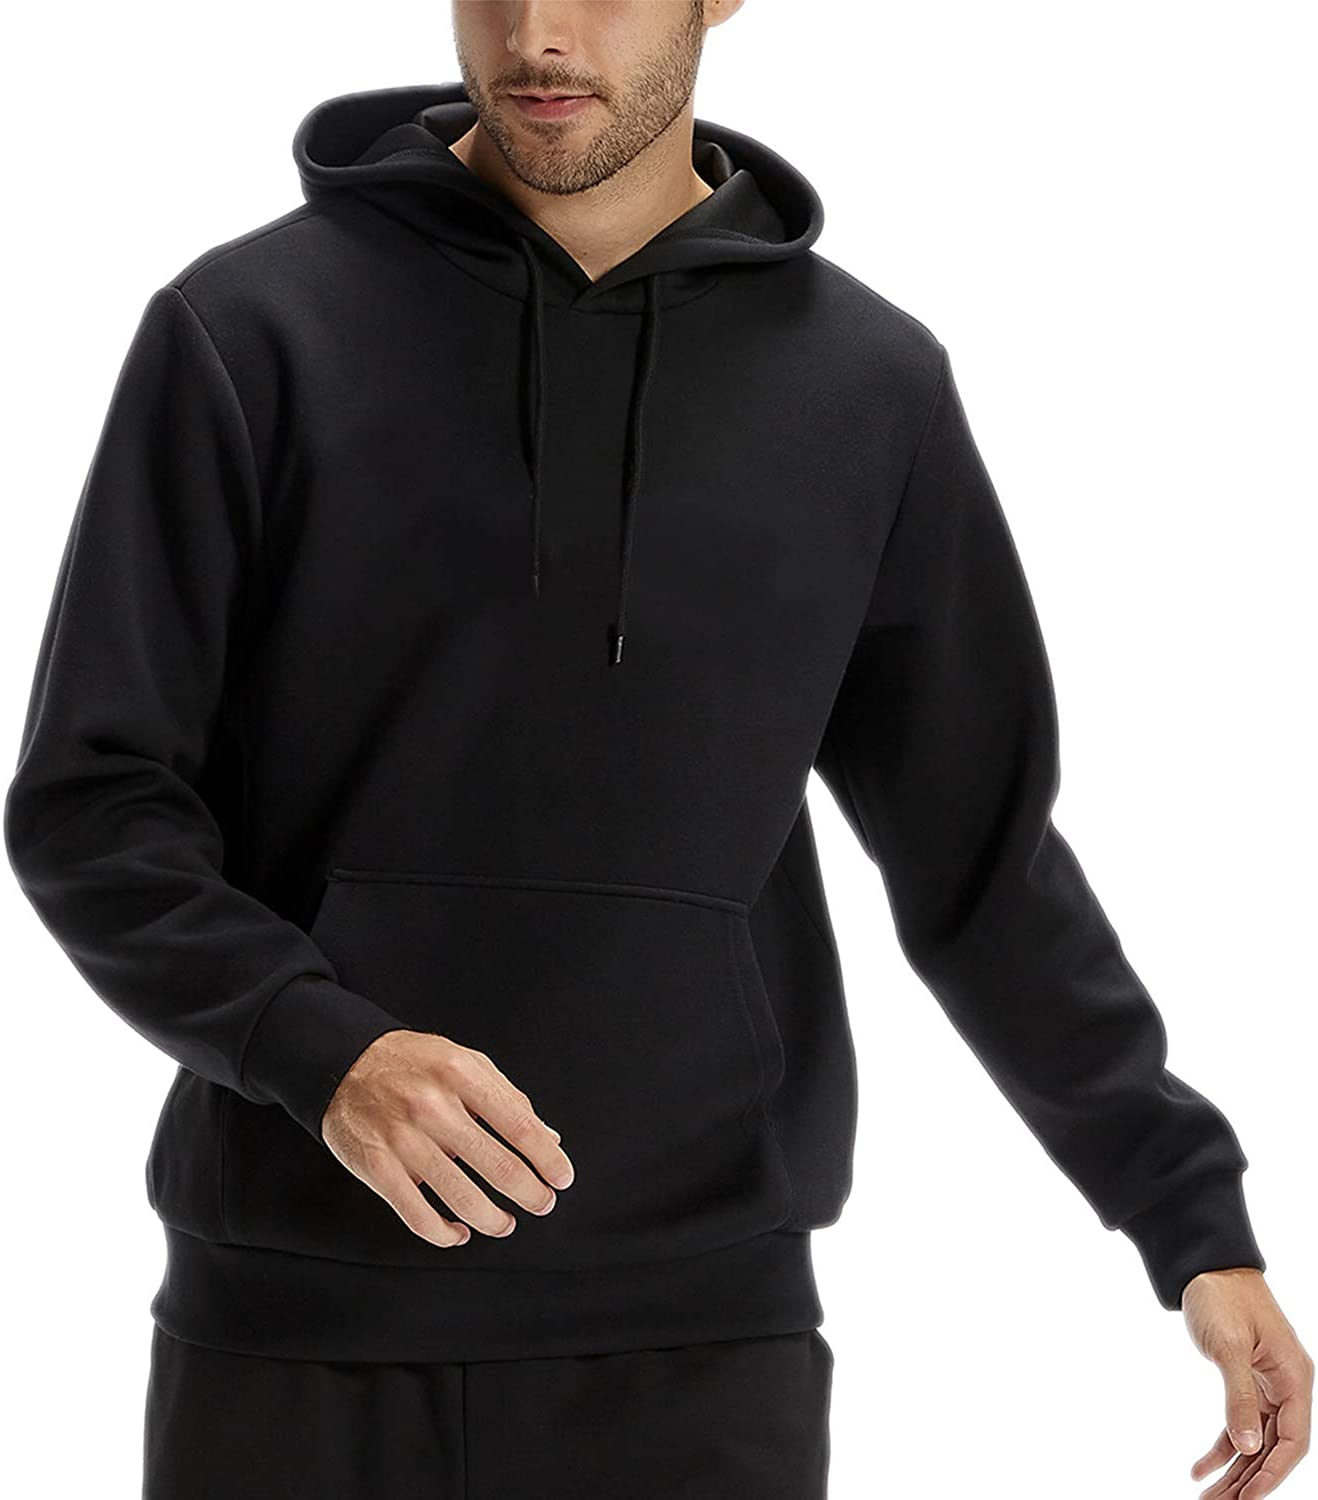 CASEI Solid Hoodies for Men Athletic Pullover Hoodie Lightweight Sweatshirt with Pockets: Clothing